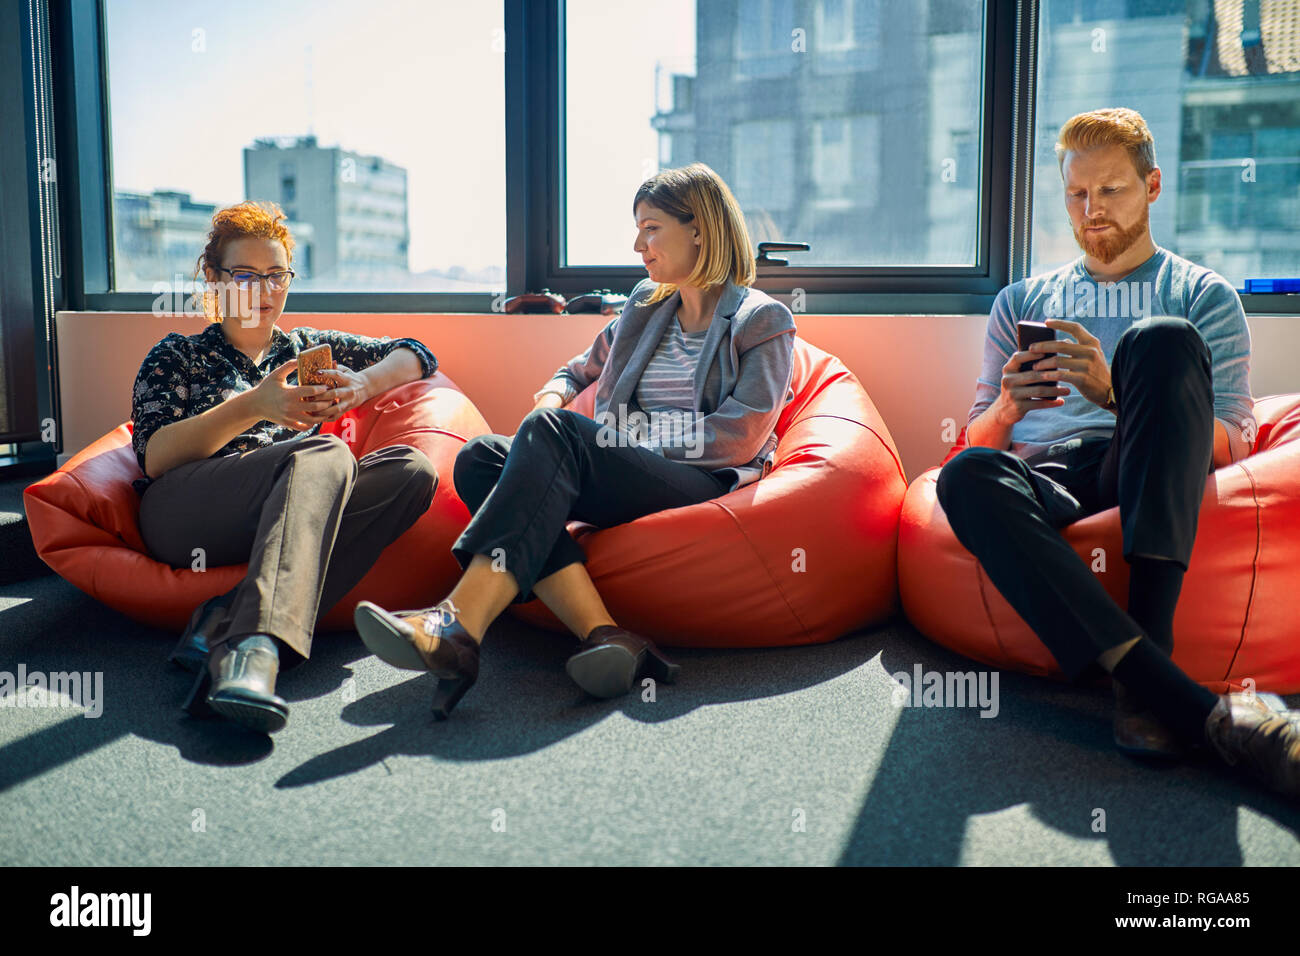 Colleagues with cell phones sitting in bean bags in office lounge - Stock Image